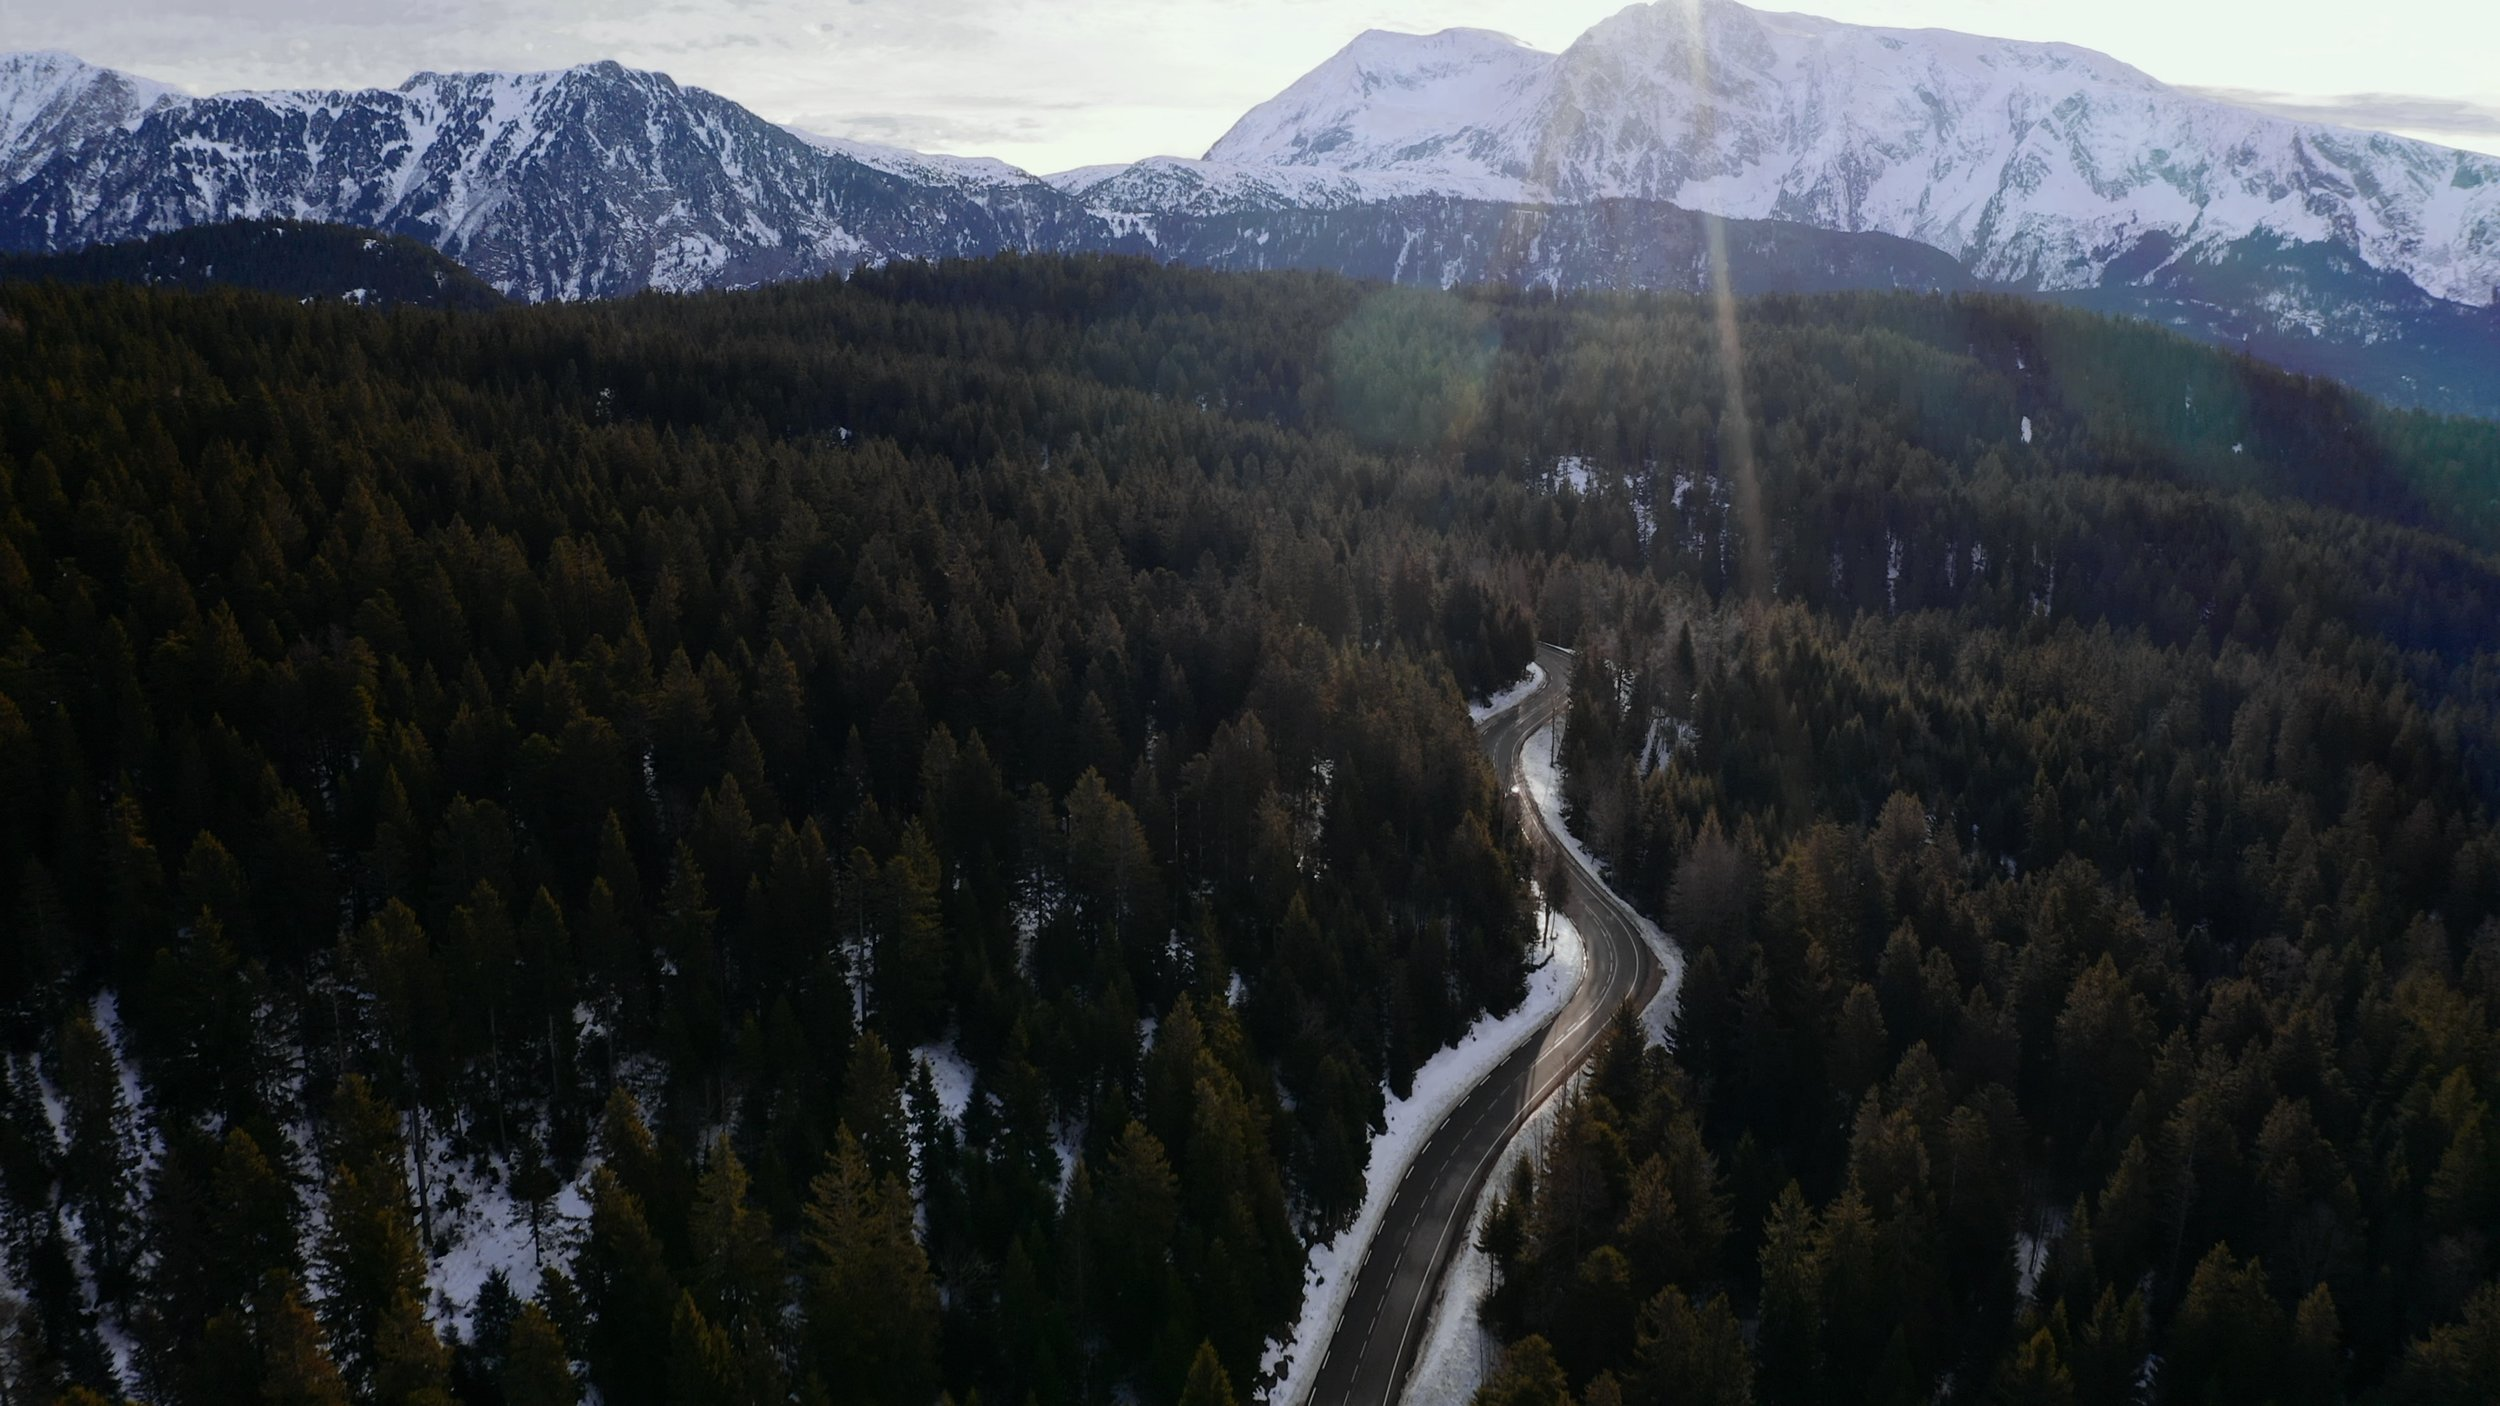 Drone Epic Mountain Roads - Of Two Lands - Frame 4.jpg